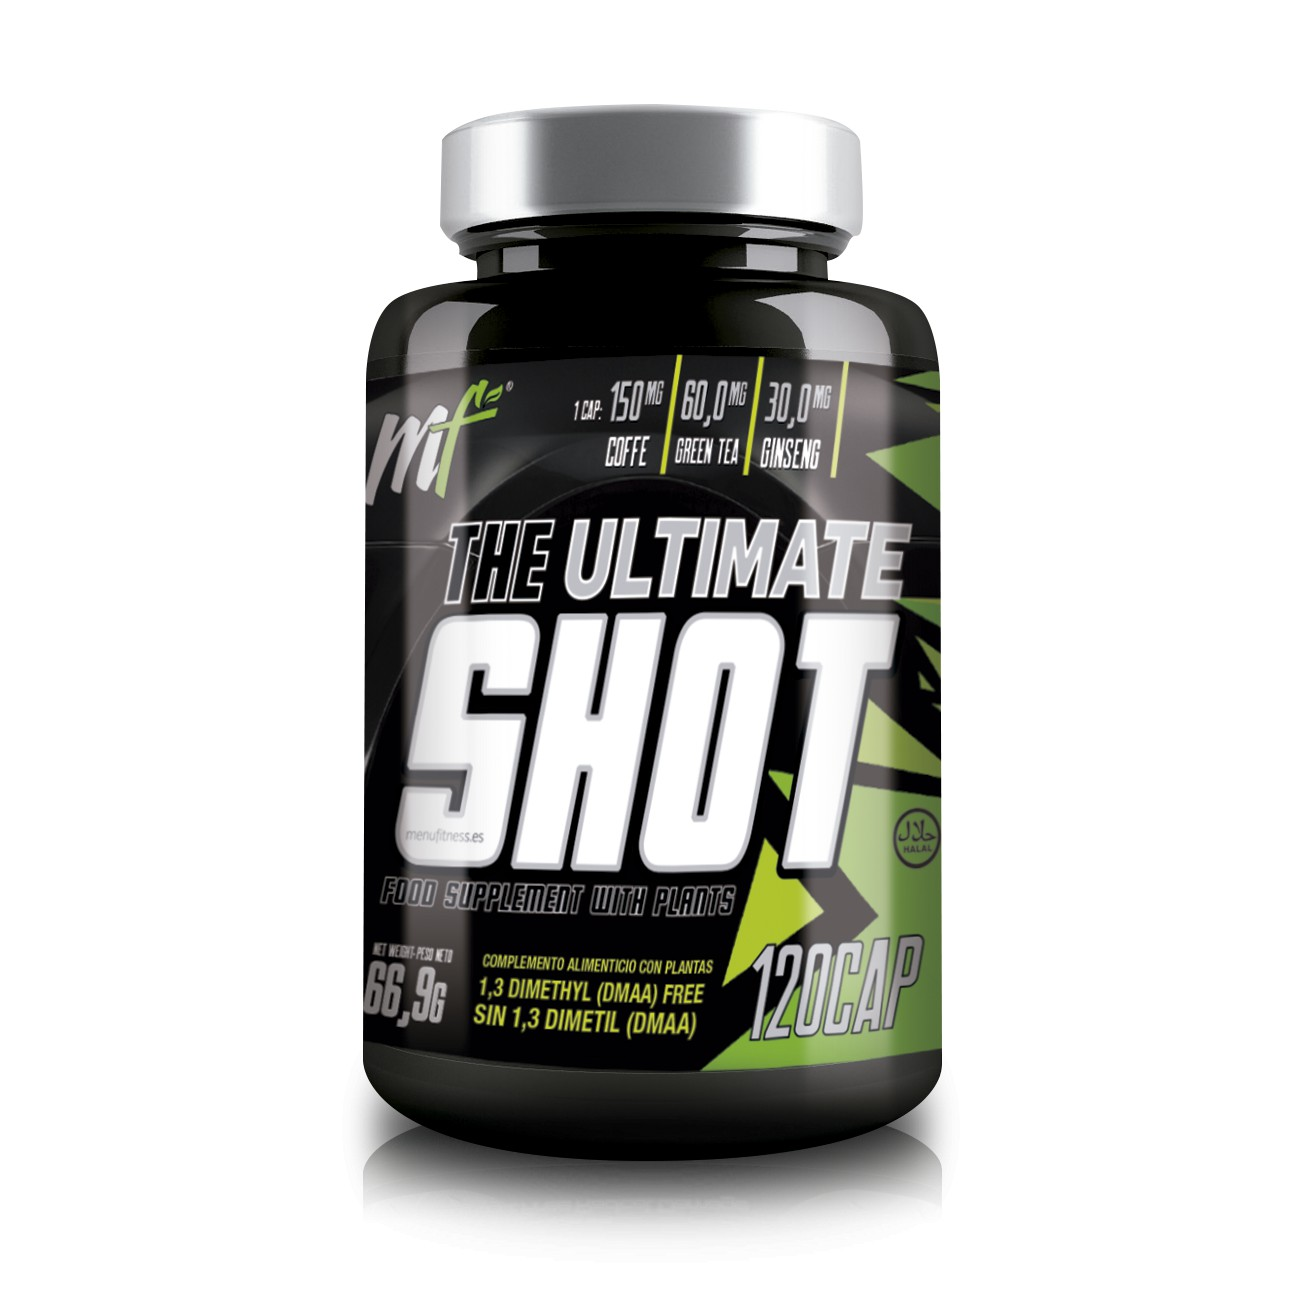 THE ULTIMATE SHOT FAT BURNER QUEMADORES DE GRASA Menu Fitness